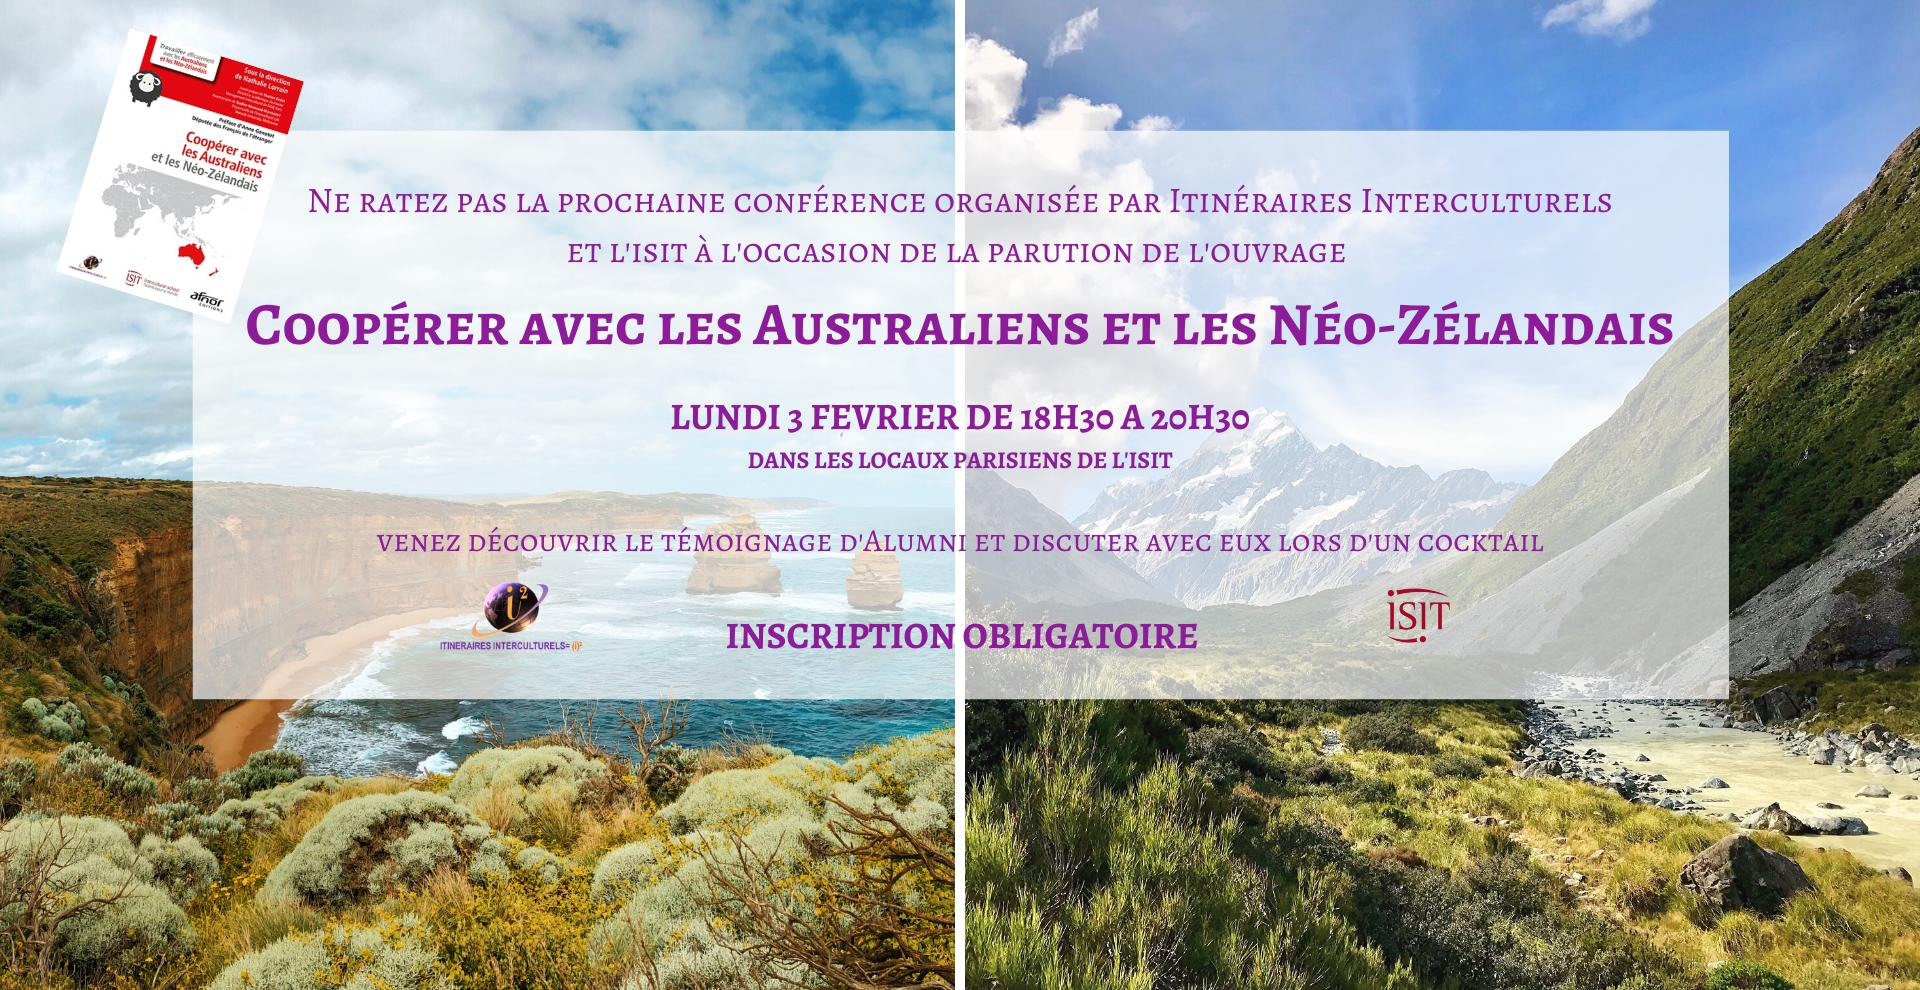 Conference: cooperate with Australians and New Zealanders